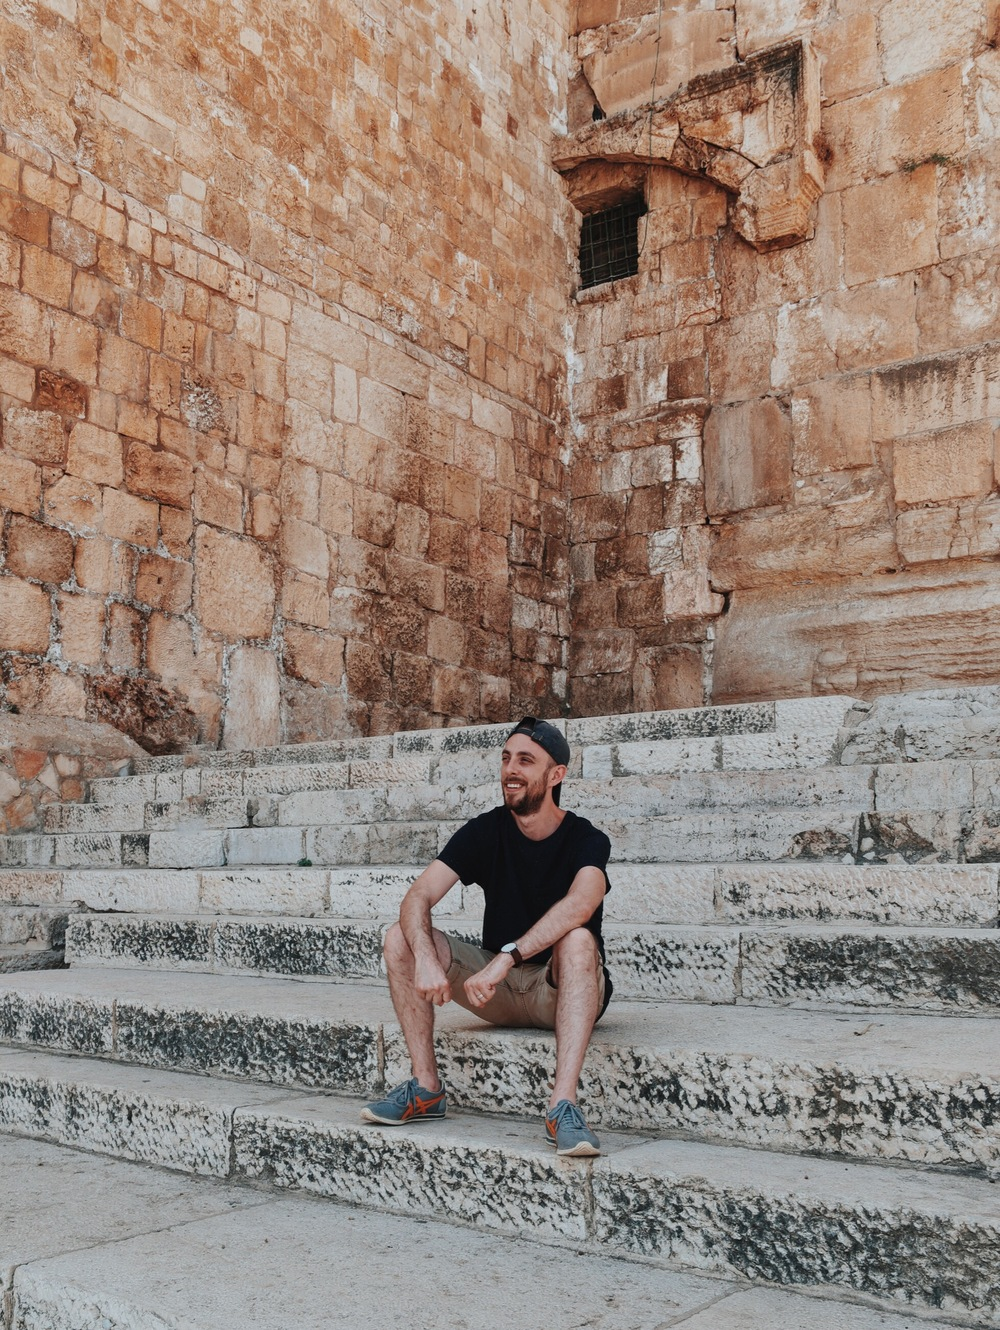 @cjcasciotta  on the Southern Steps of the Temple Mount, taken by @philipleclerc